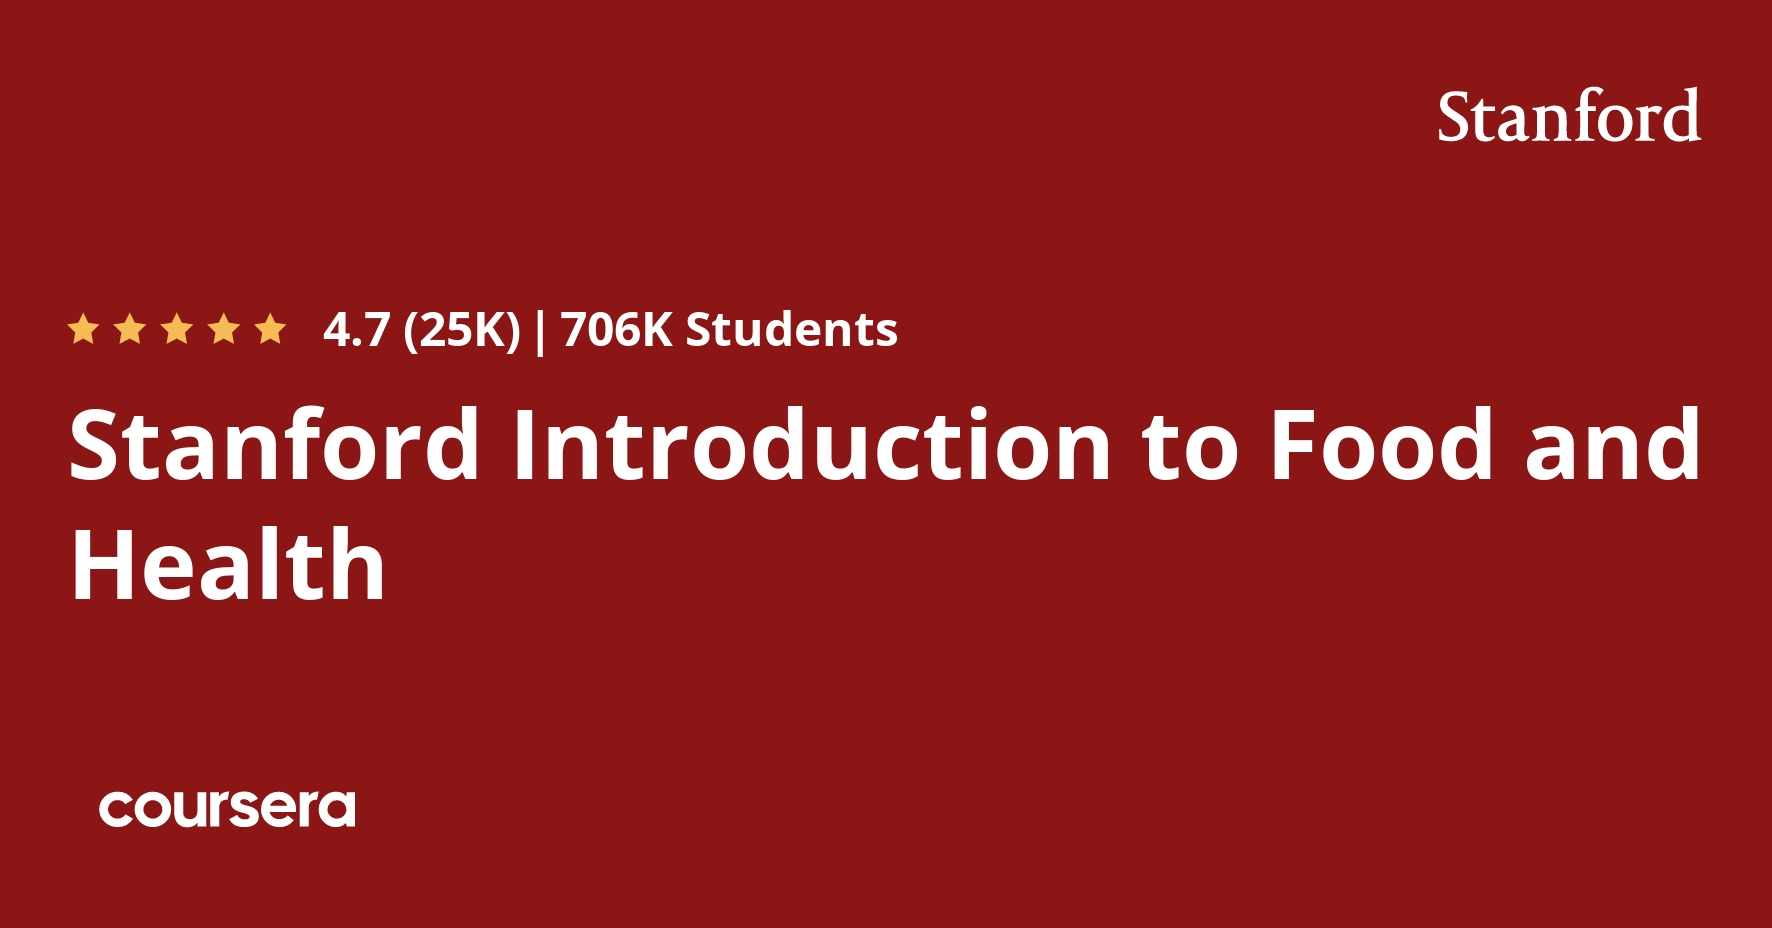 Stanford Introduction to Food and Health